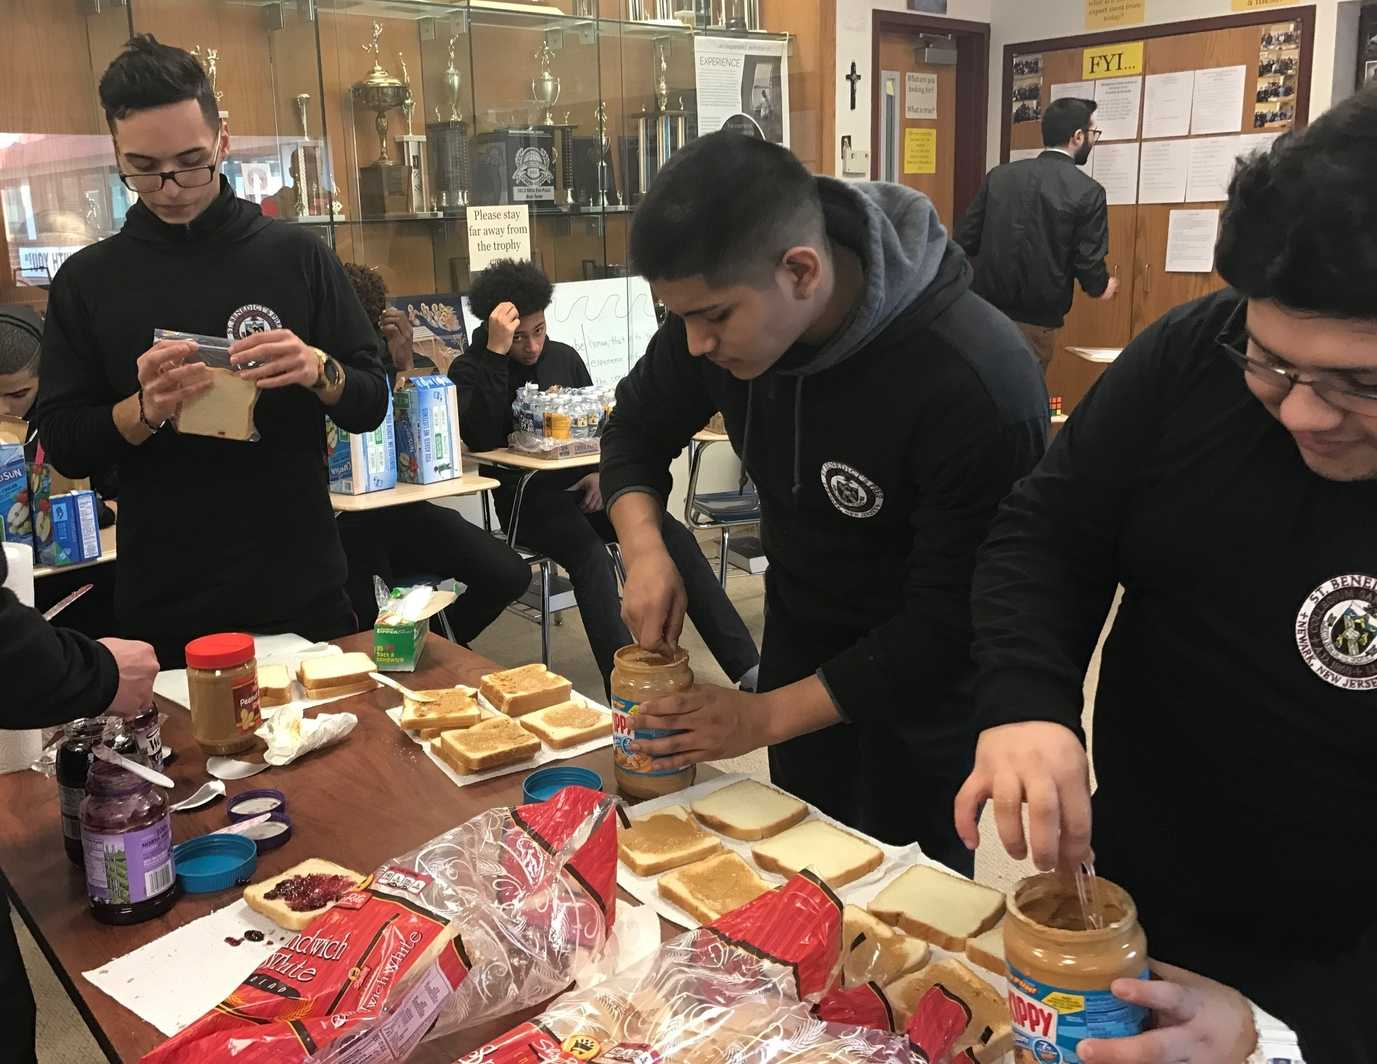 Student volunteers making peanut butter and jelly sandwiches for the homeless.